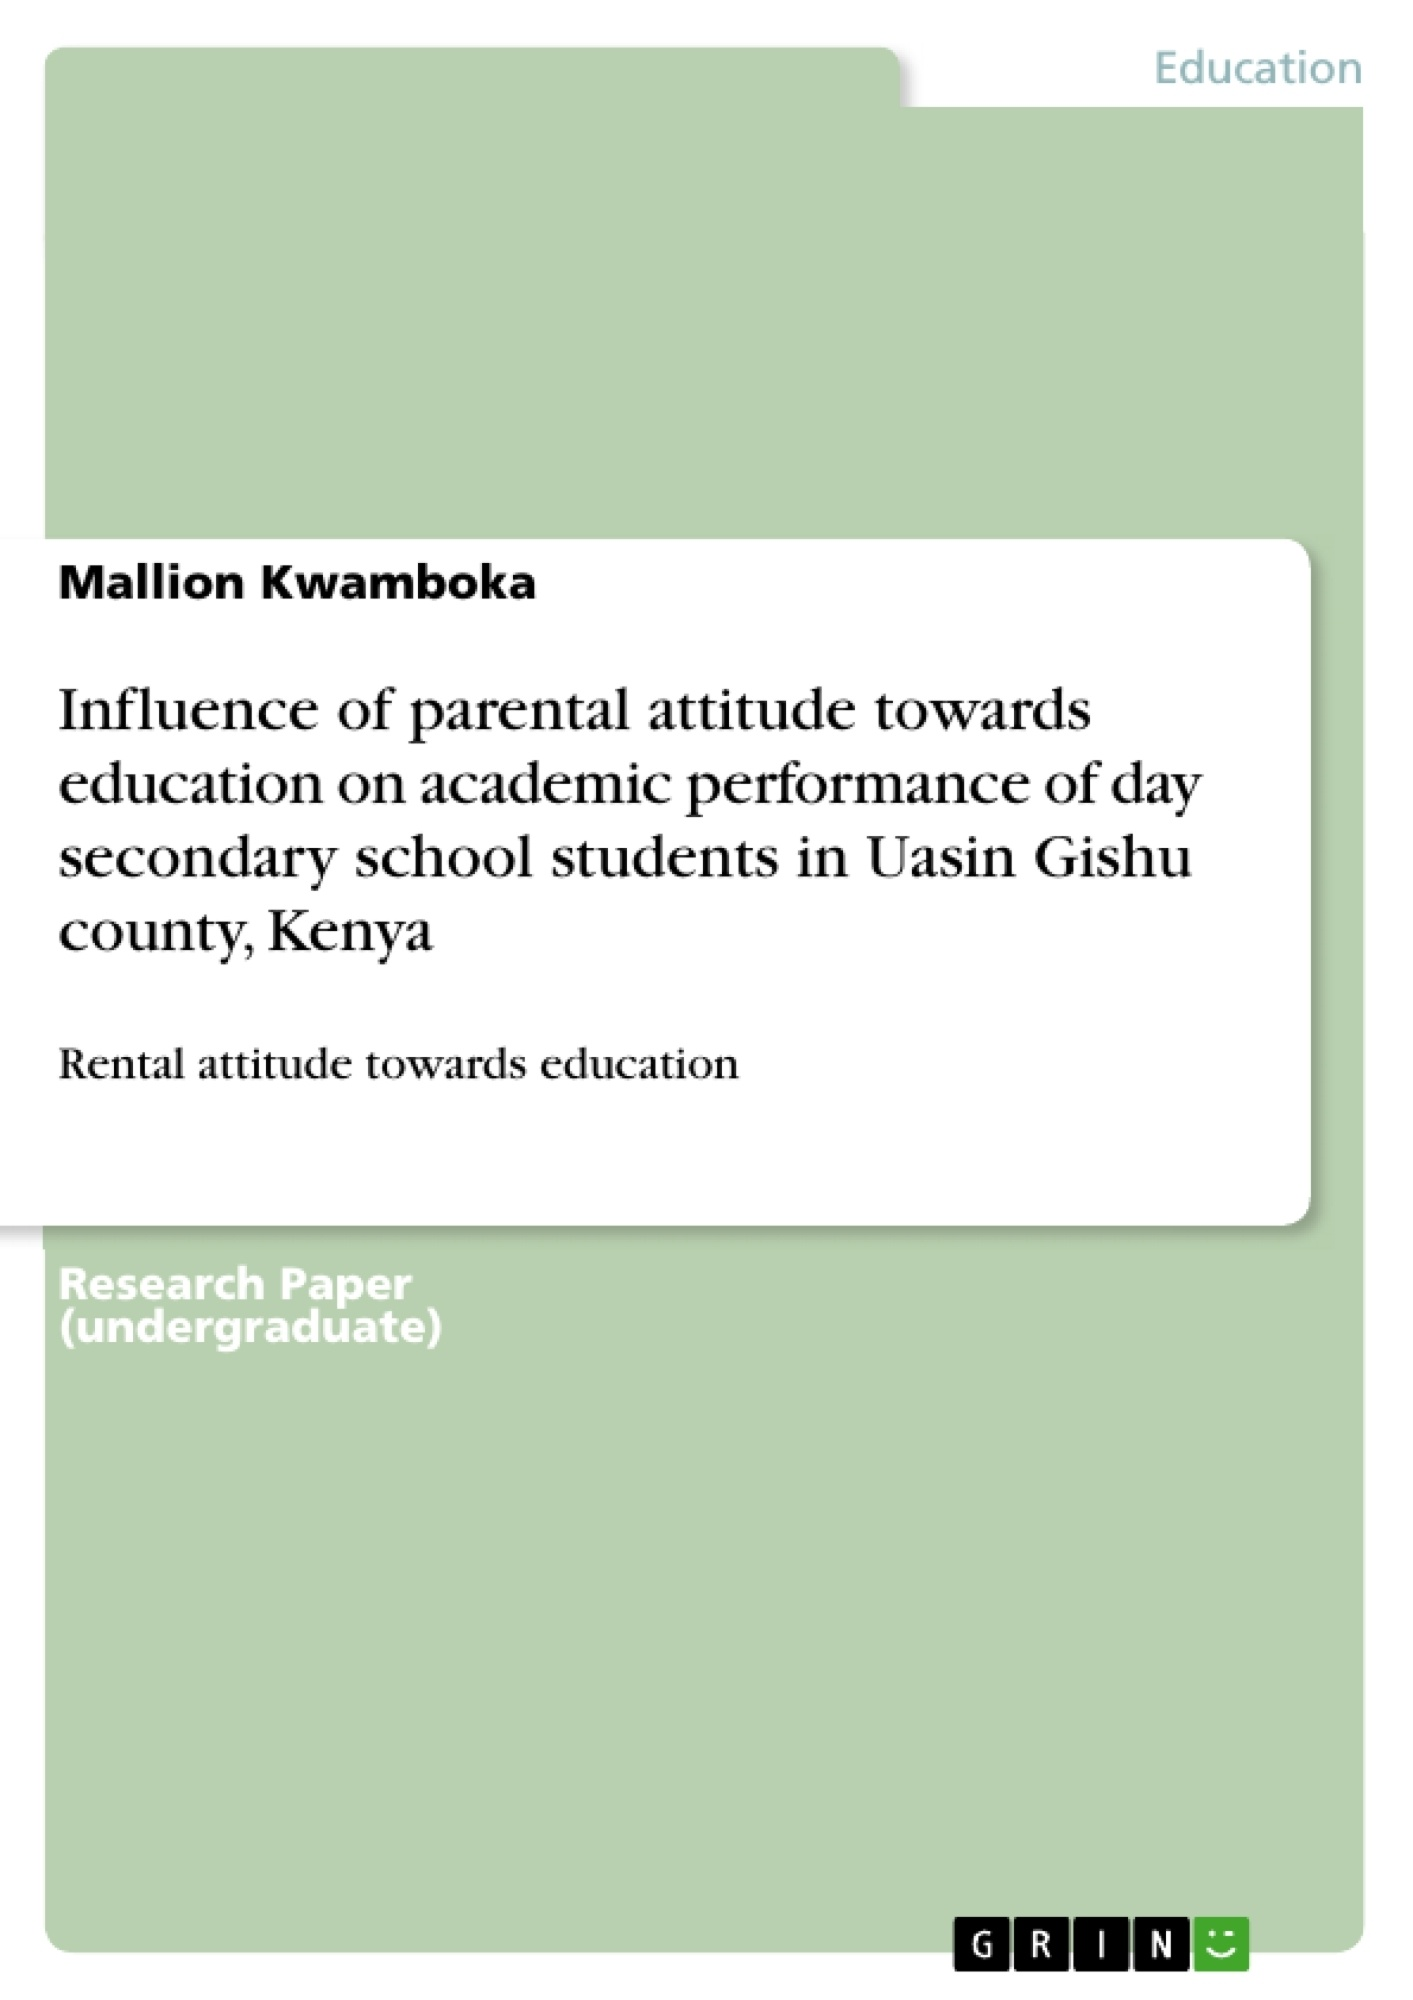 Title: Influence of parental attitude towards education on academic performance of day secondary school students in Uasin Gishu county, Kenya